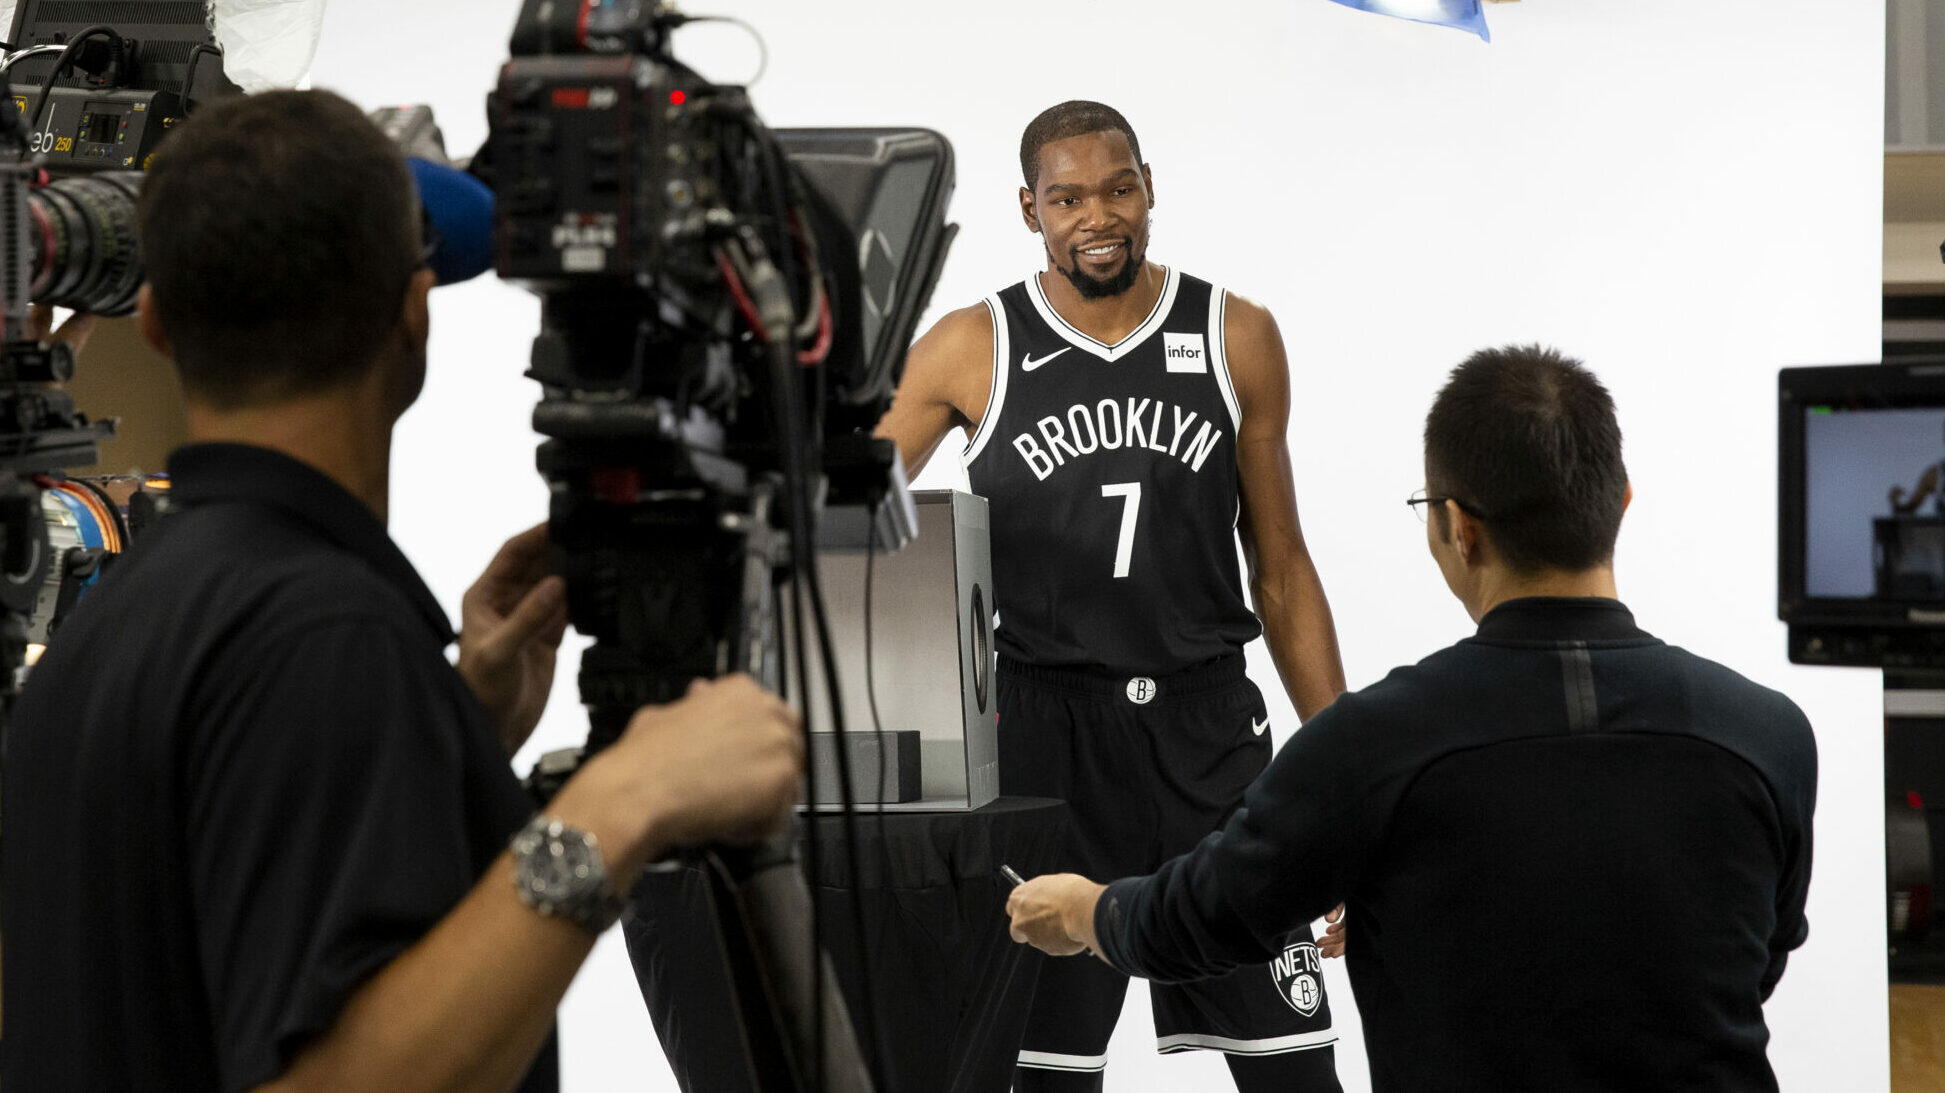 Optimism abounds as 2021 NBA Media Day arrives